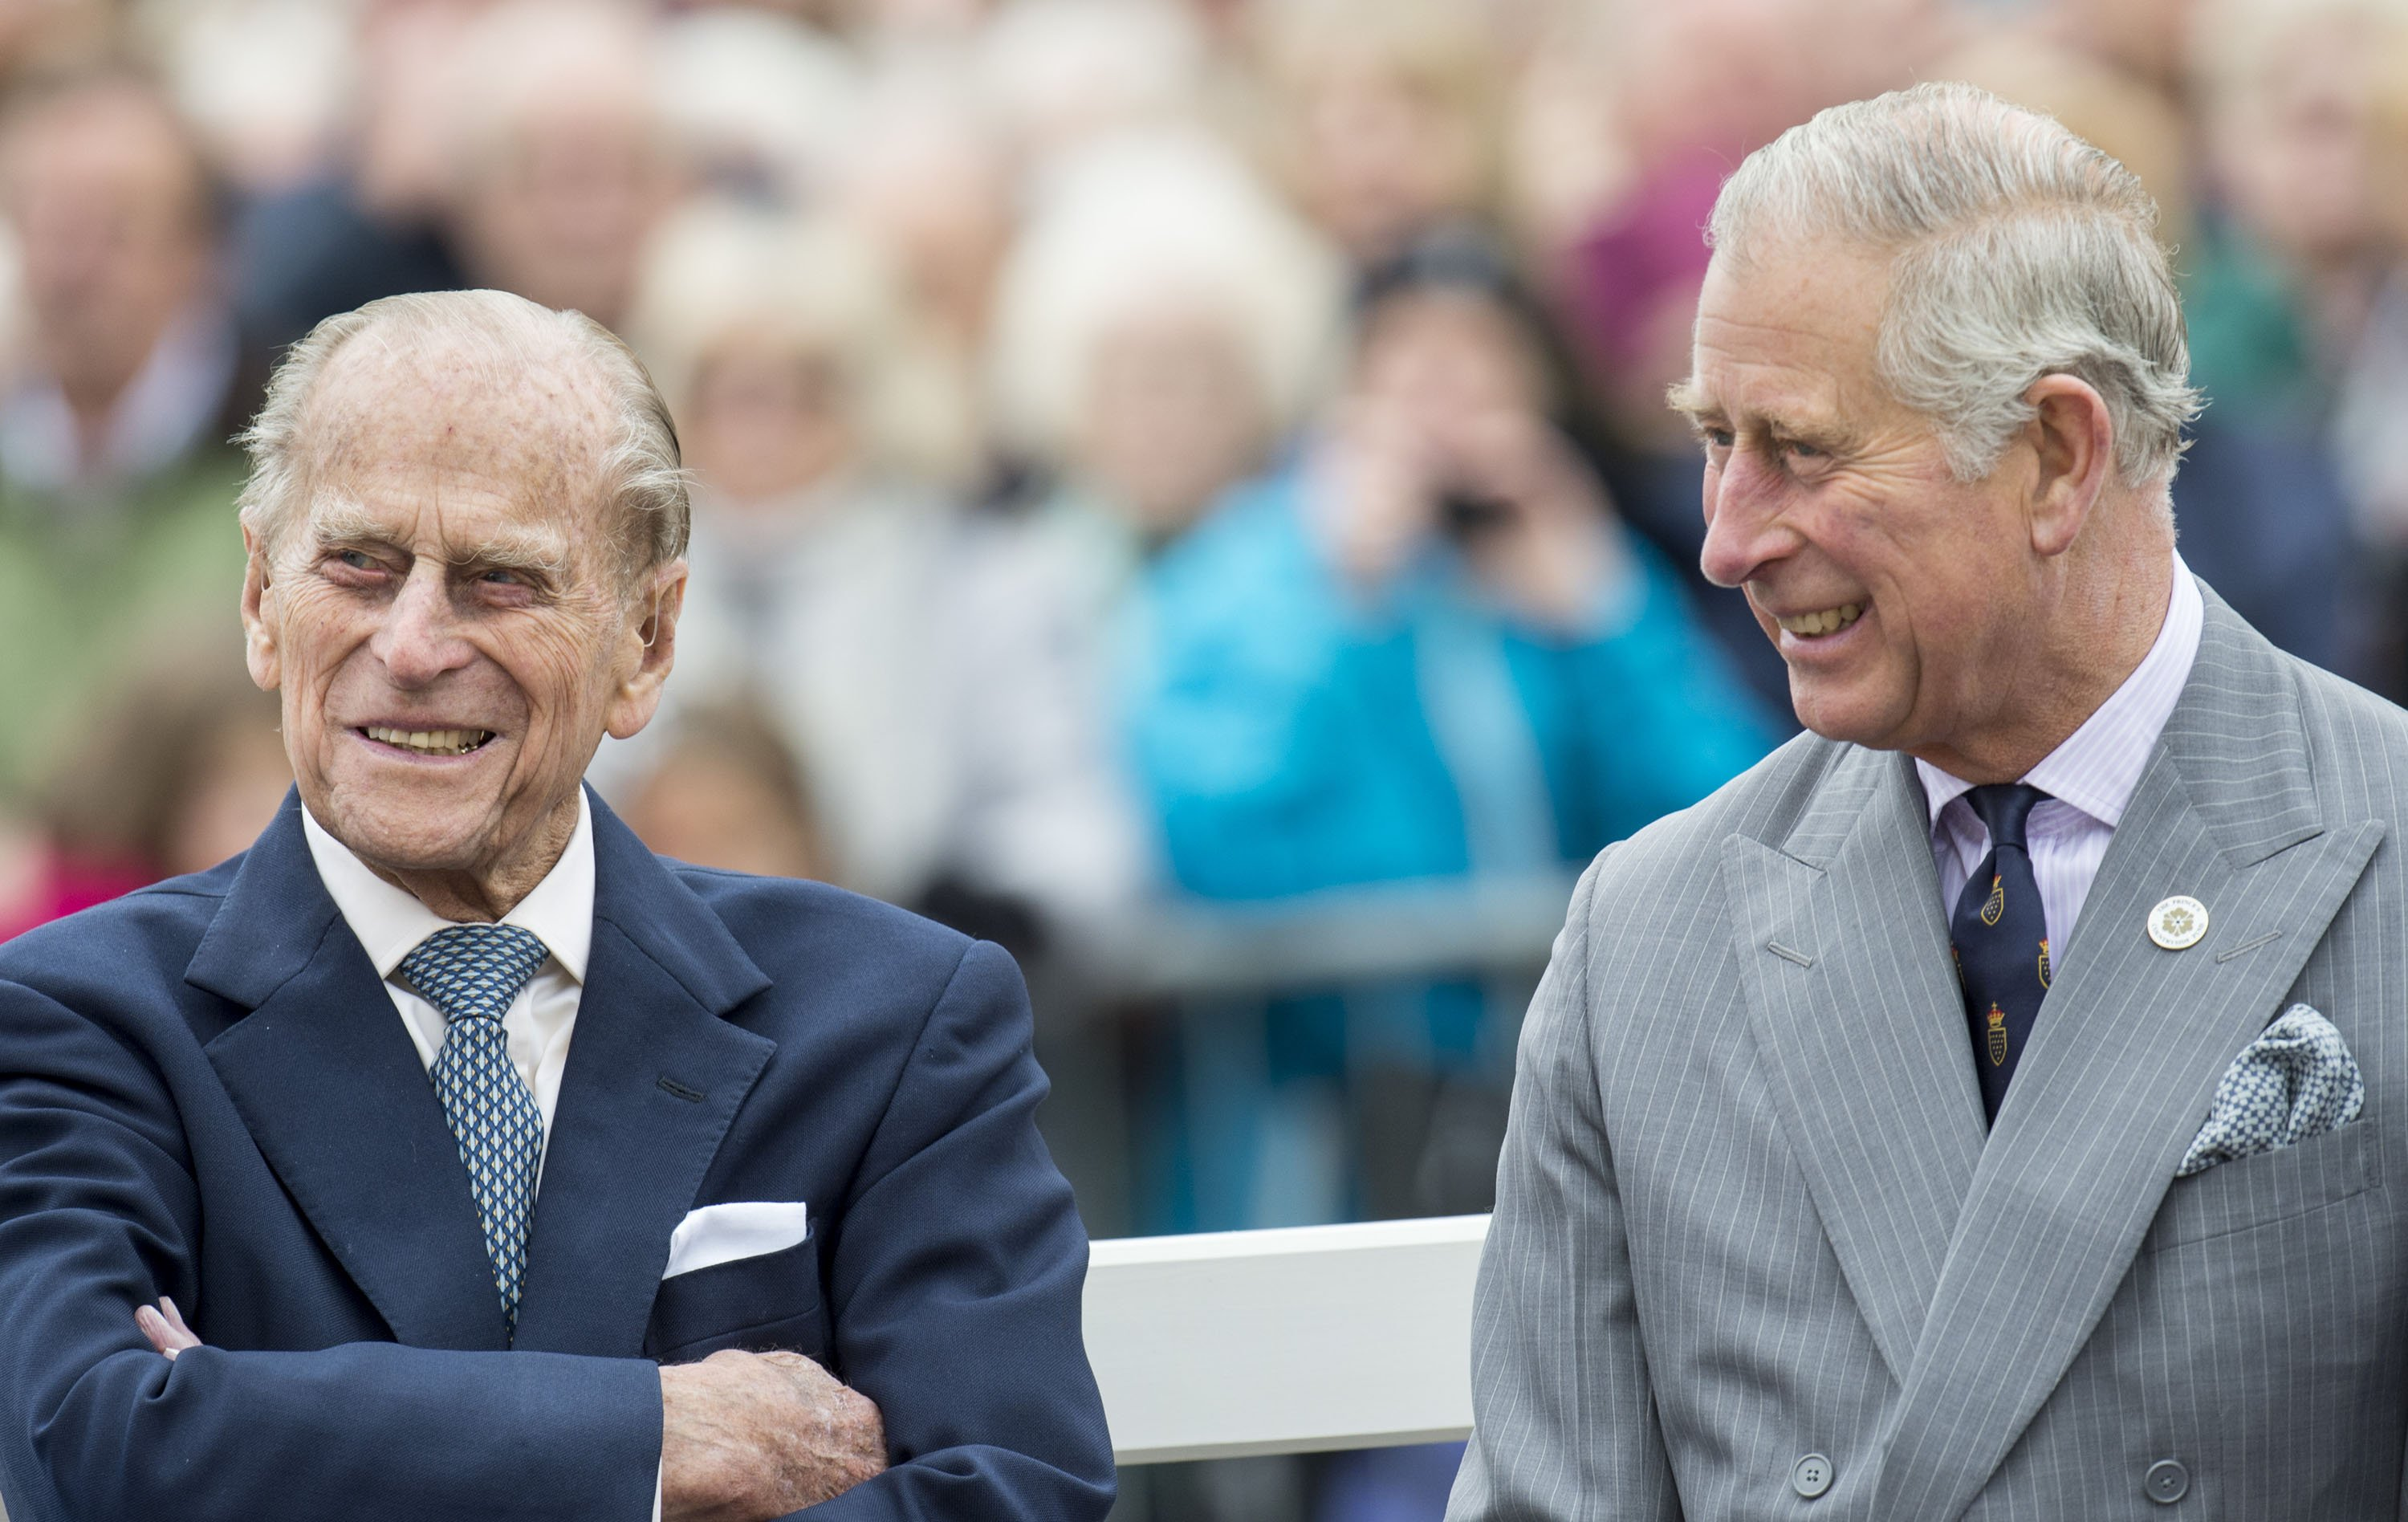 Prince Philip and Prince Charles attend the unveiling of a statue of Queen Elizabeth The Queen Mother during a visit to Poundbury on October 27, 2016 | Photo: Getty Images